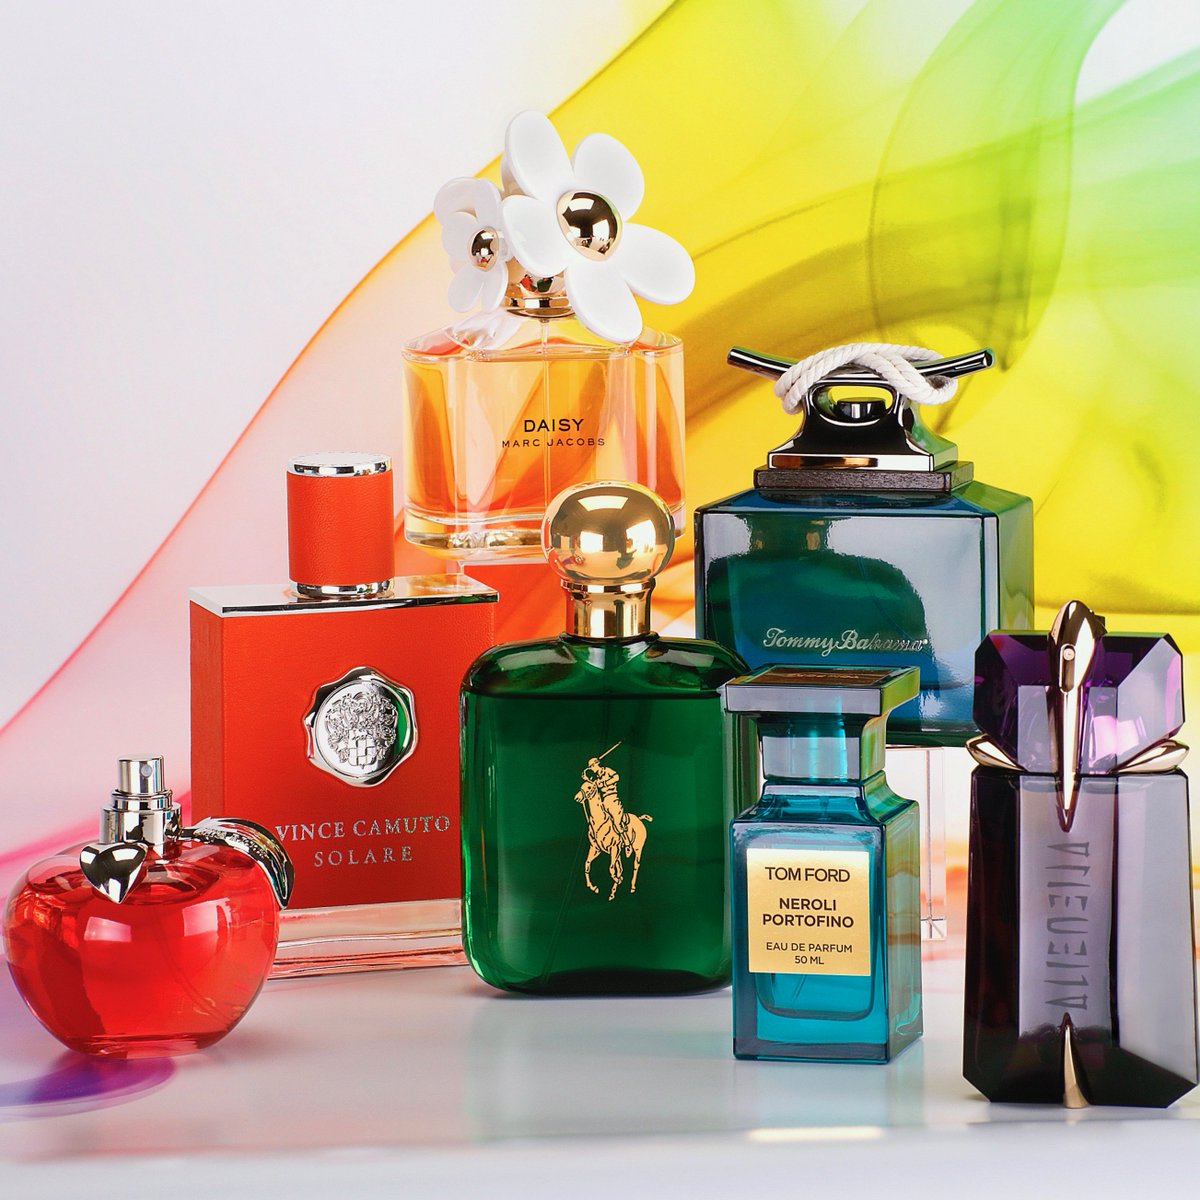 All for love and love for all 🌈 #PRIDE #Perfumania #DestinationFragrance